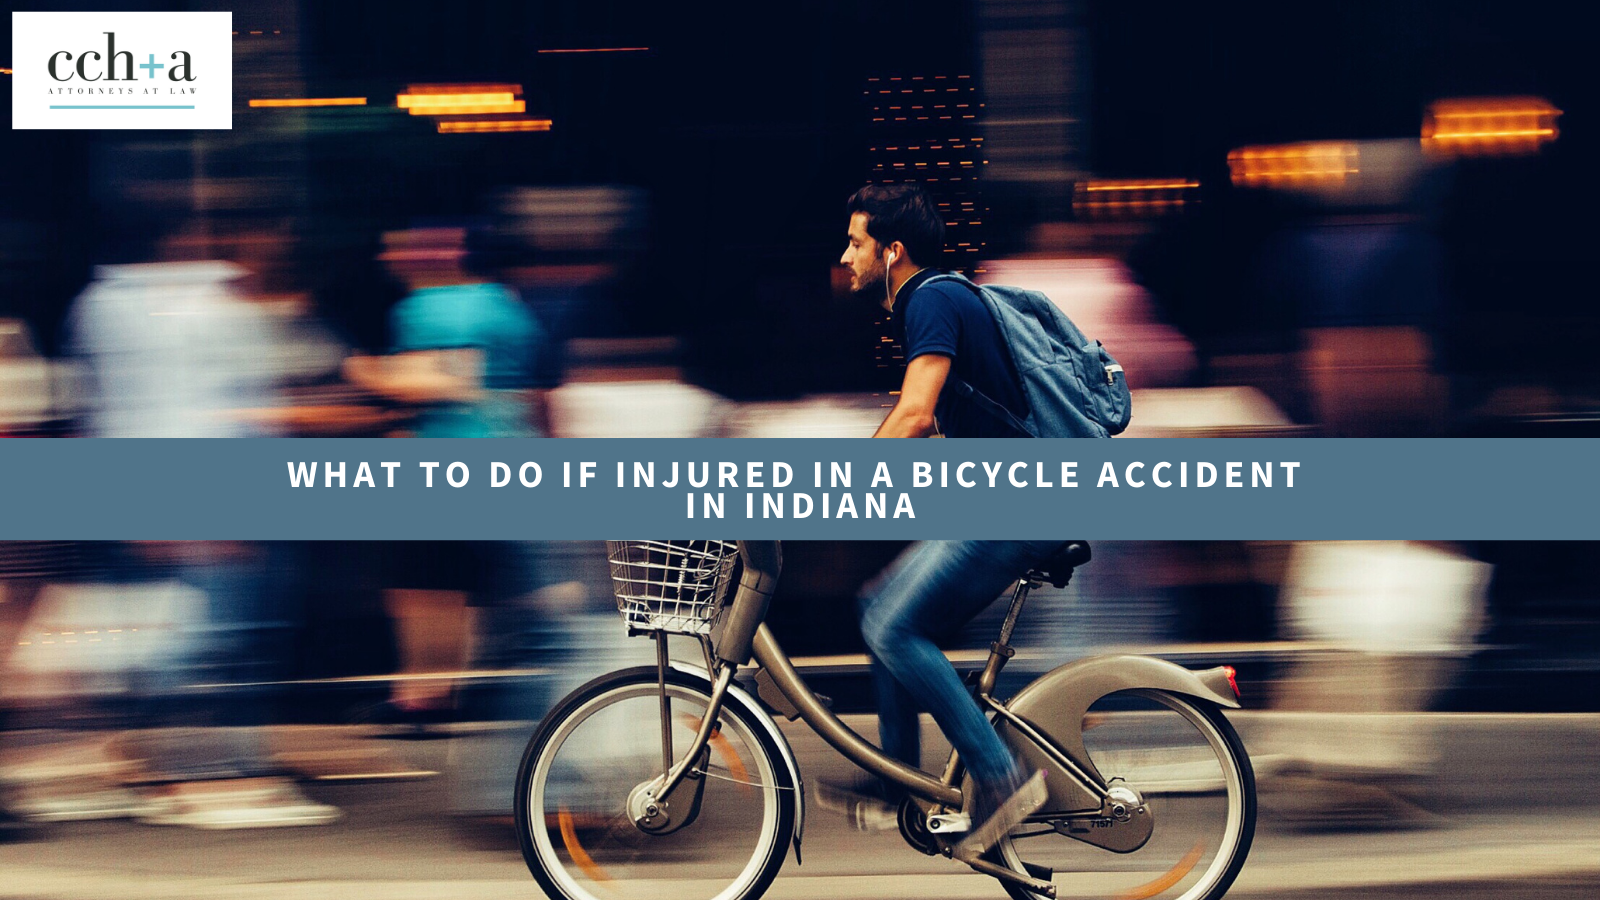 What to do if injured in a bicycle accident in indiana 1